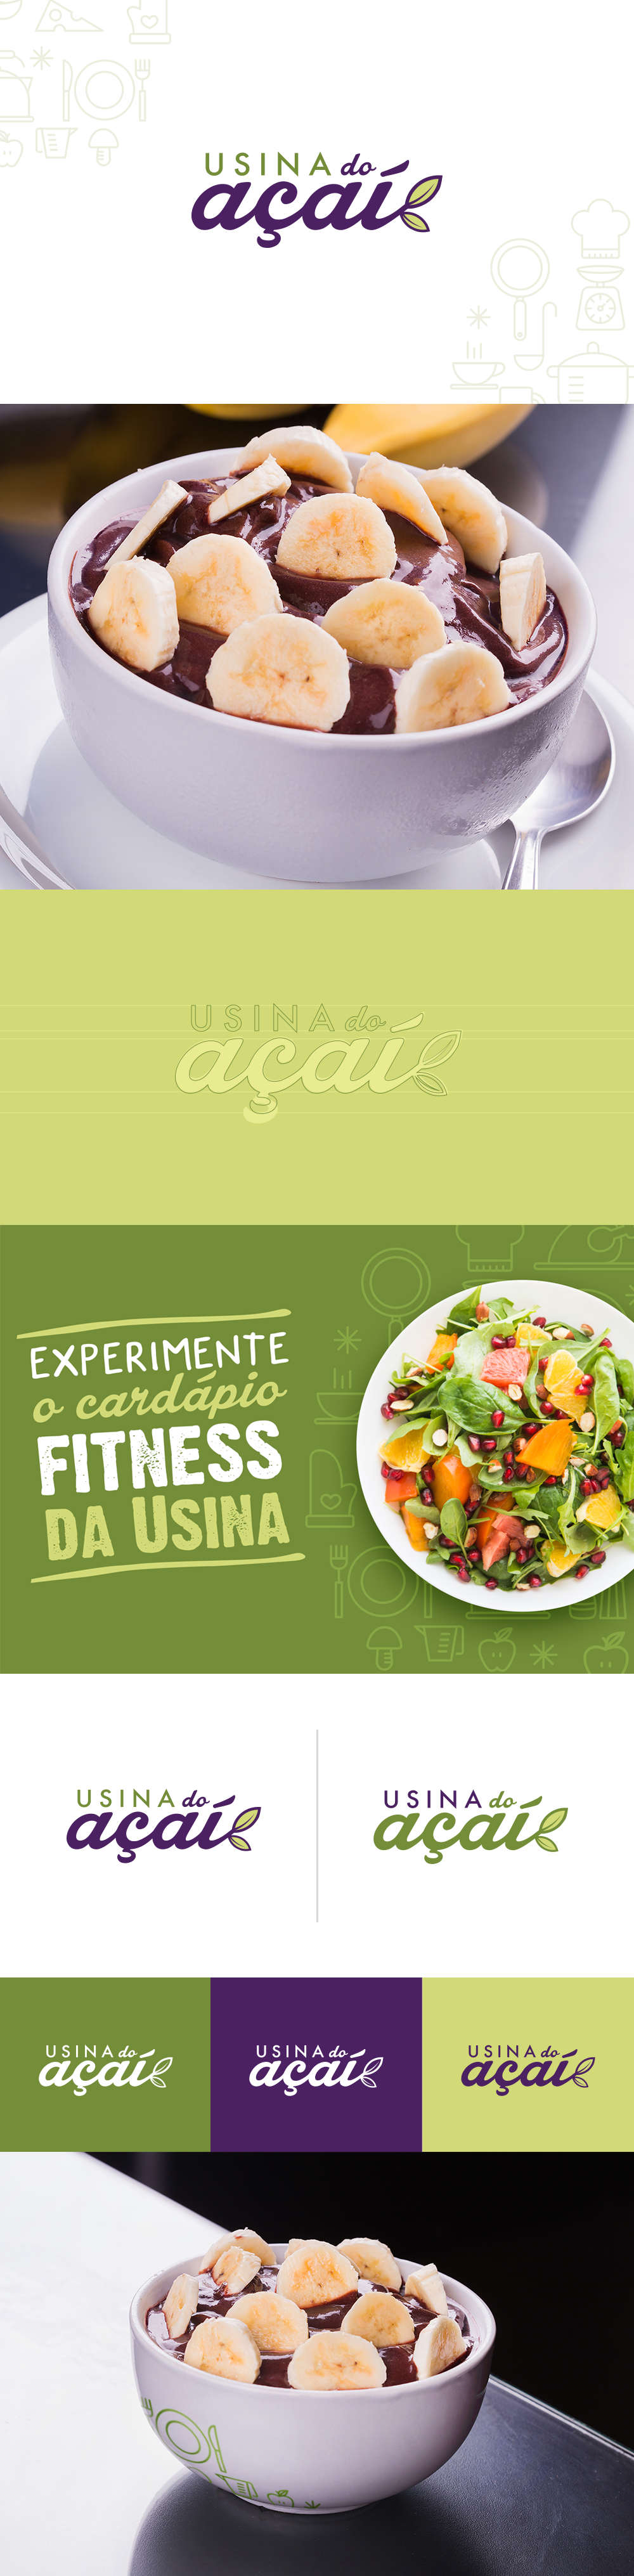 Usina - do-açaí